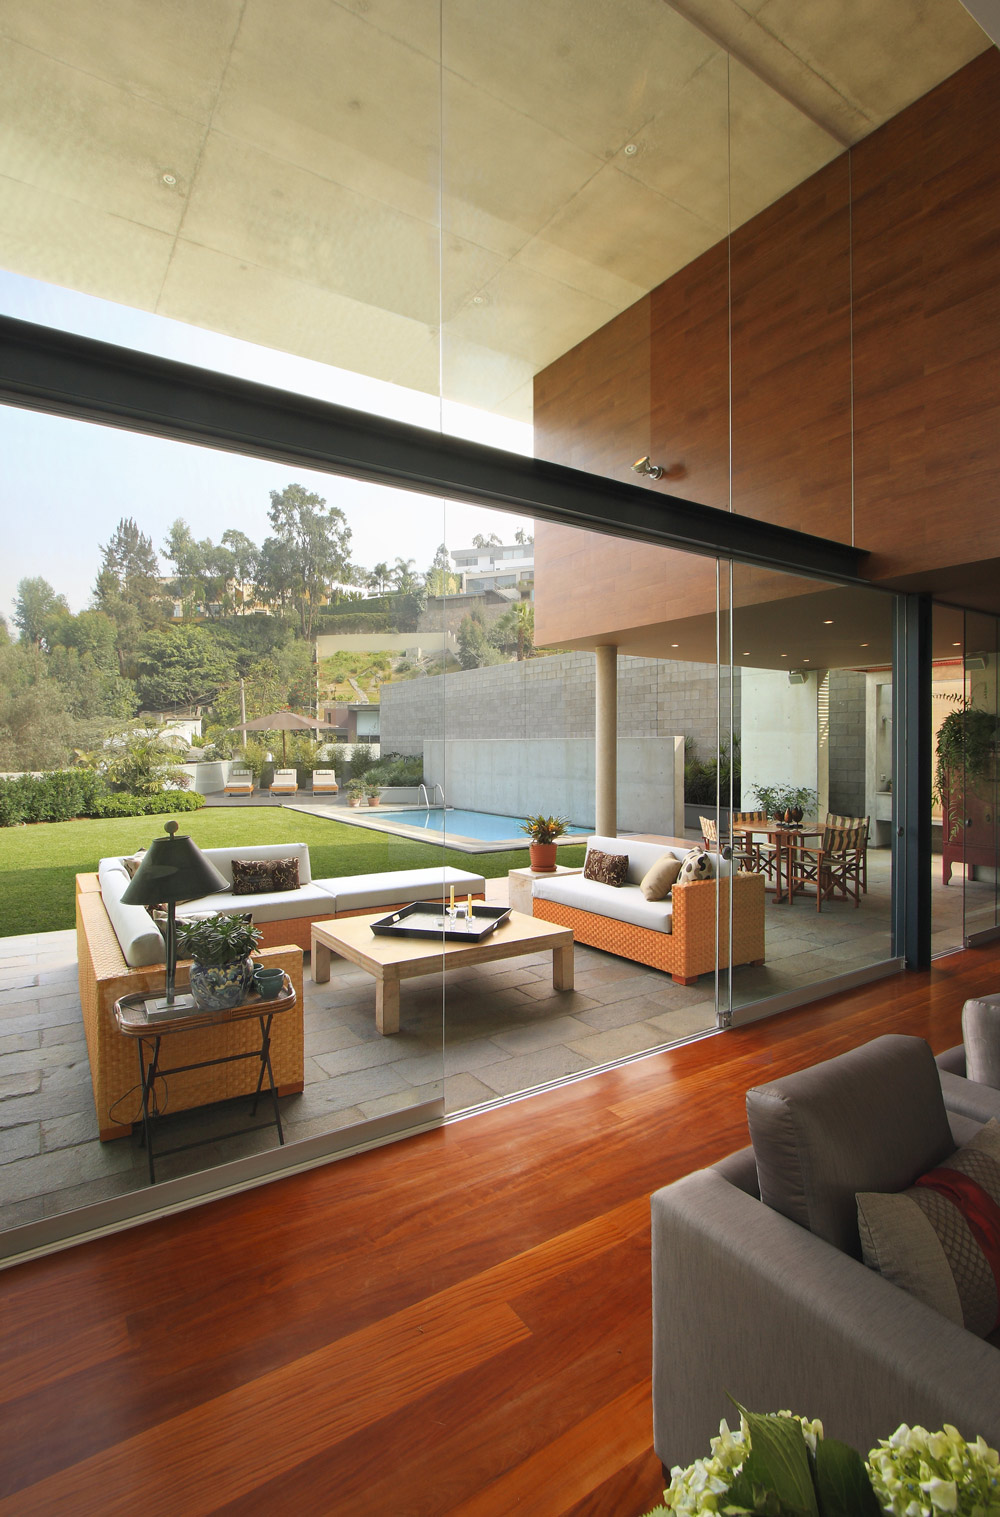 High Ceilings, Glass Walls, Sliding Doors, Family Home in Lima, Peru